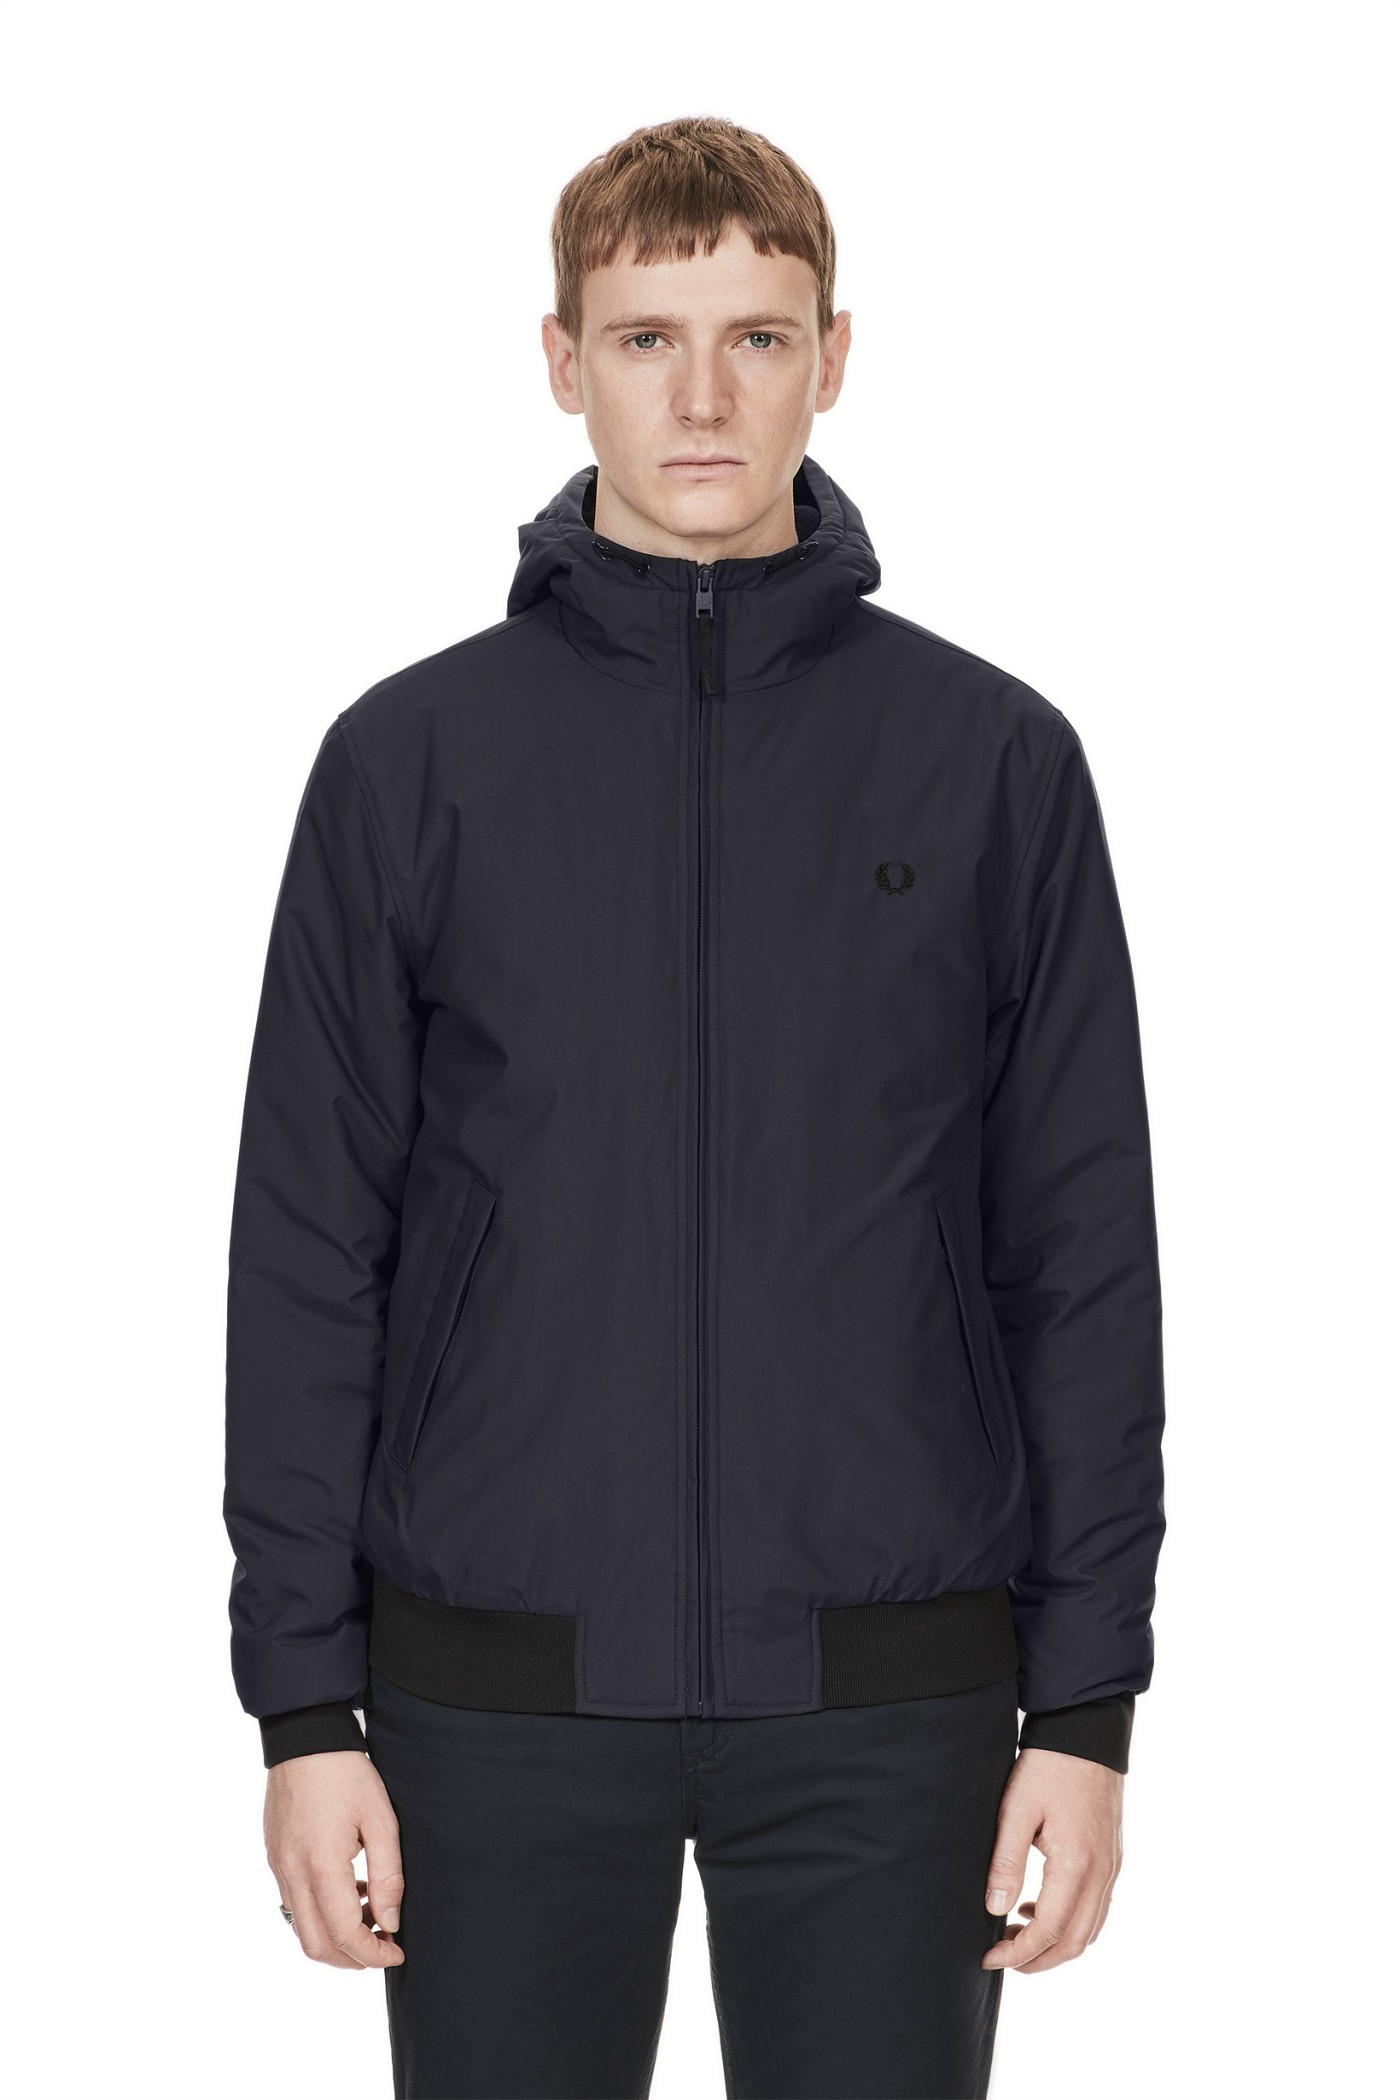 Fred Perry - Quilted Hooded Brentham Jacket Graphite : quilted hooded jacket - Adamdwight.com